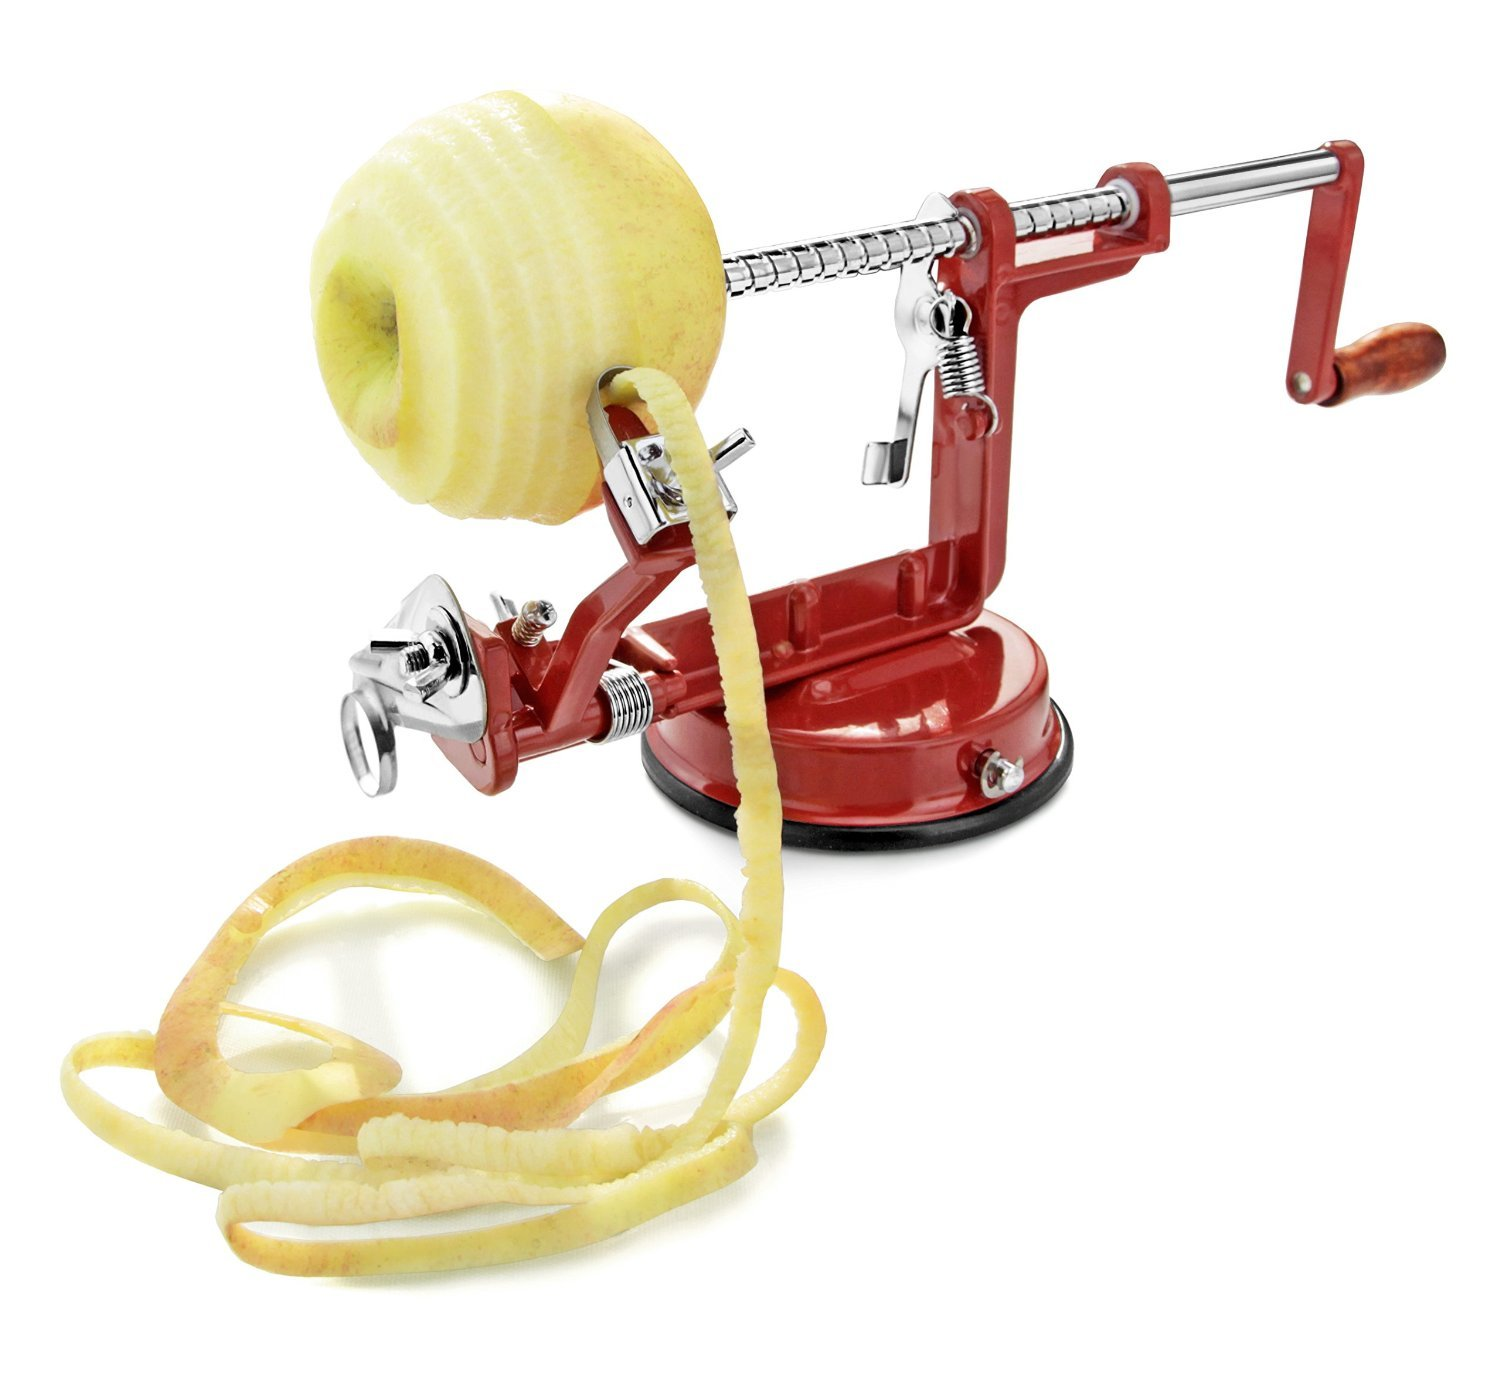 APPLE PEELER by Spiralizer, Durable Heavy Duty Die Cast Magnesium Alloy Apple Slicer, Corer Peeler